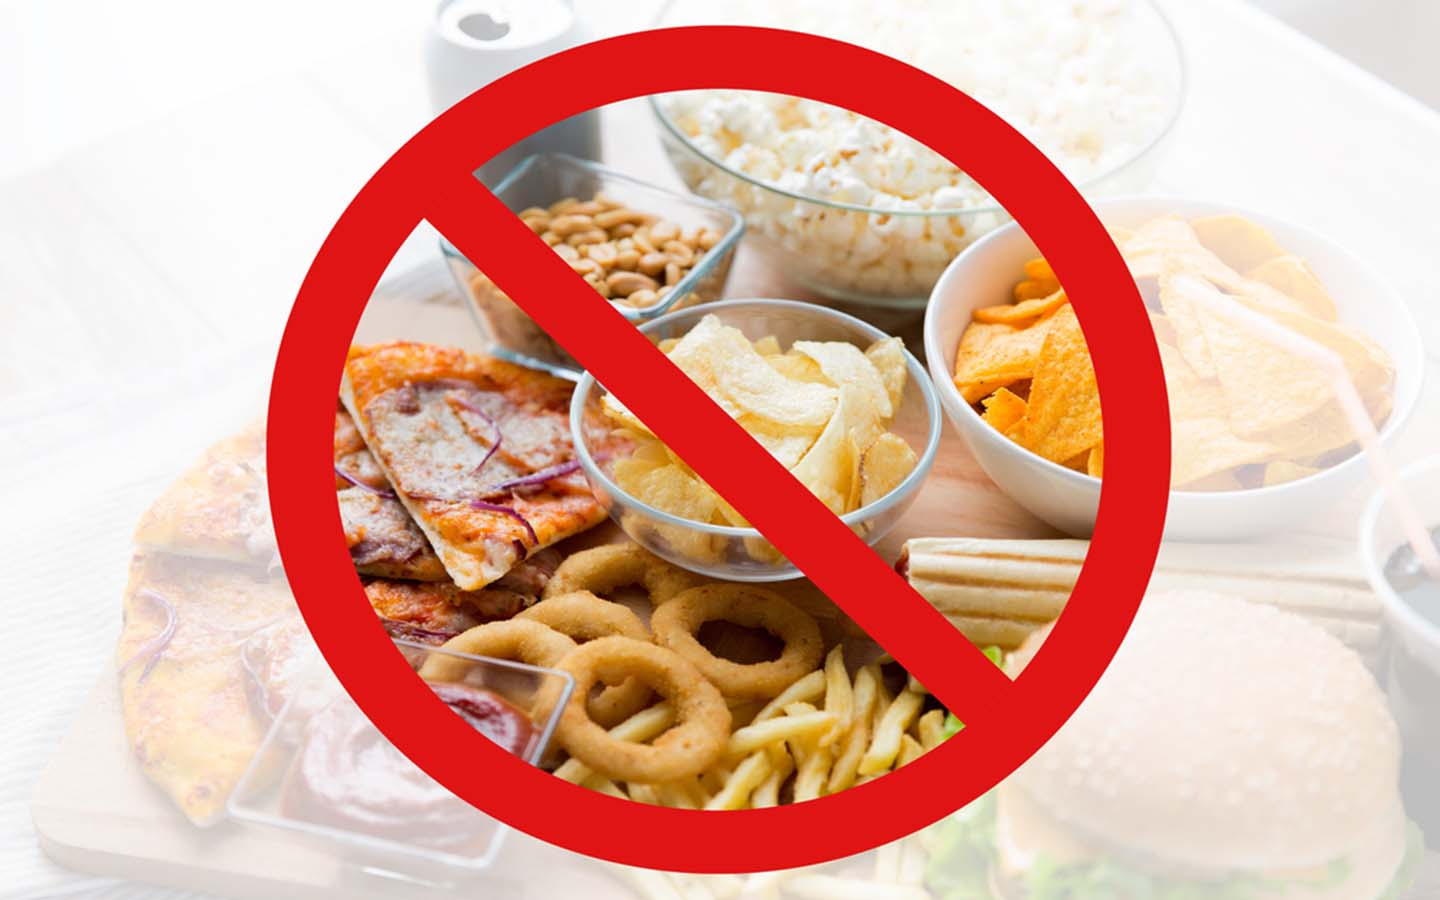 Say No to fried and processed foods